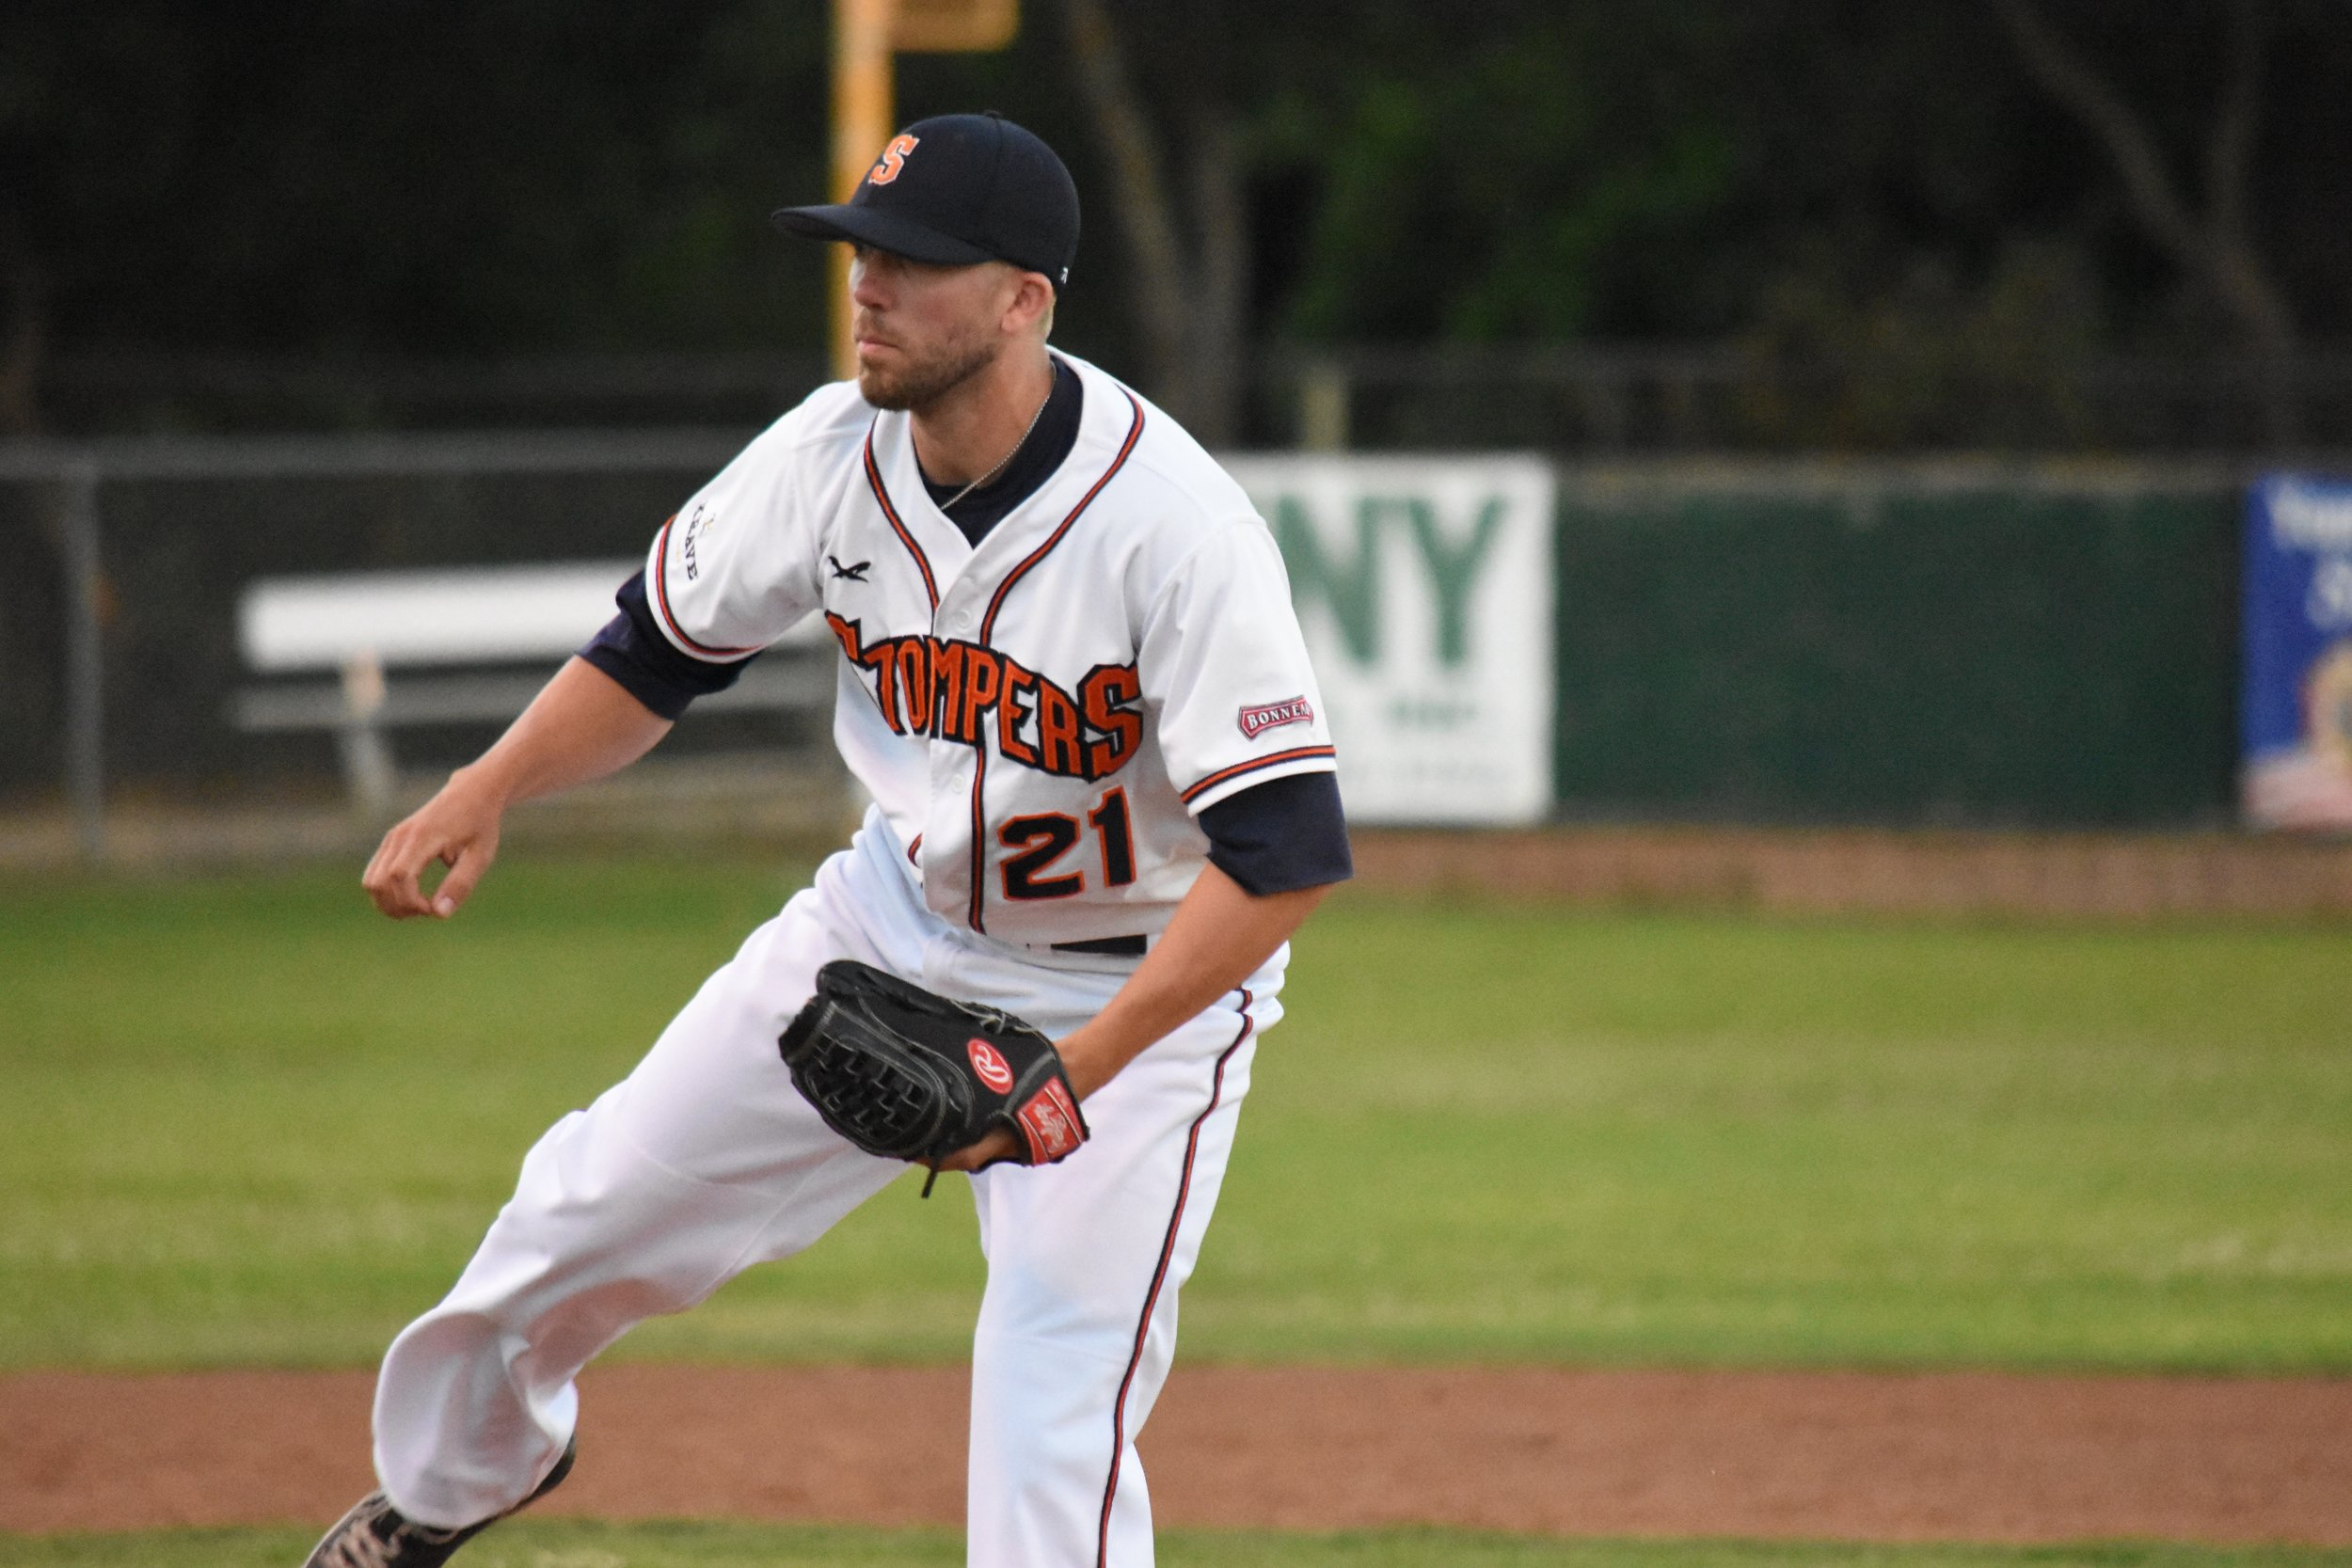 Ryan Richardson has been a valuable member of the Sonoma Stompers' bullpen in 2017. (James W. Toy III / Sonoma Stompers)